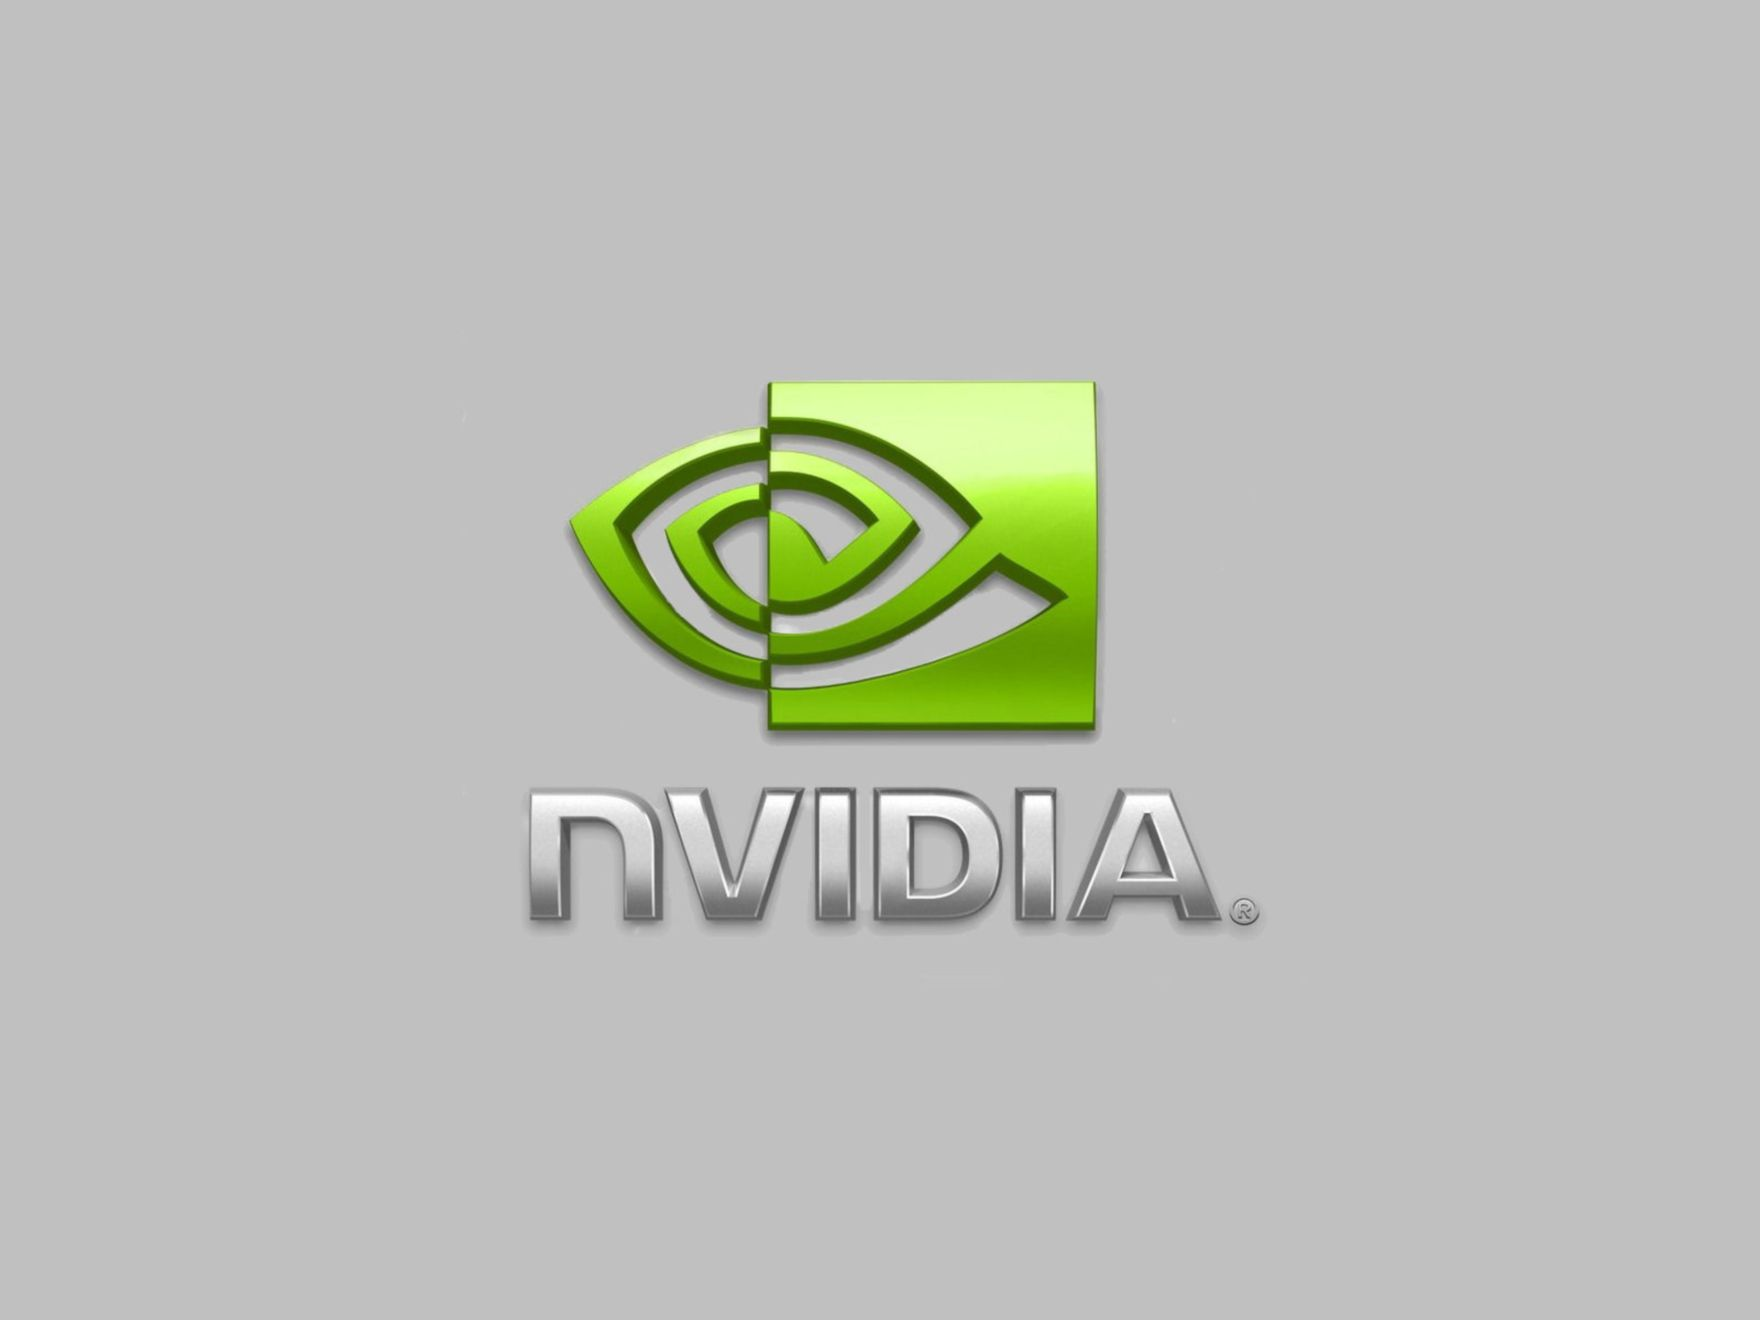 Download free HD Nvidia Logo Normal Wallpaper, image